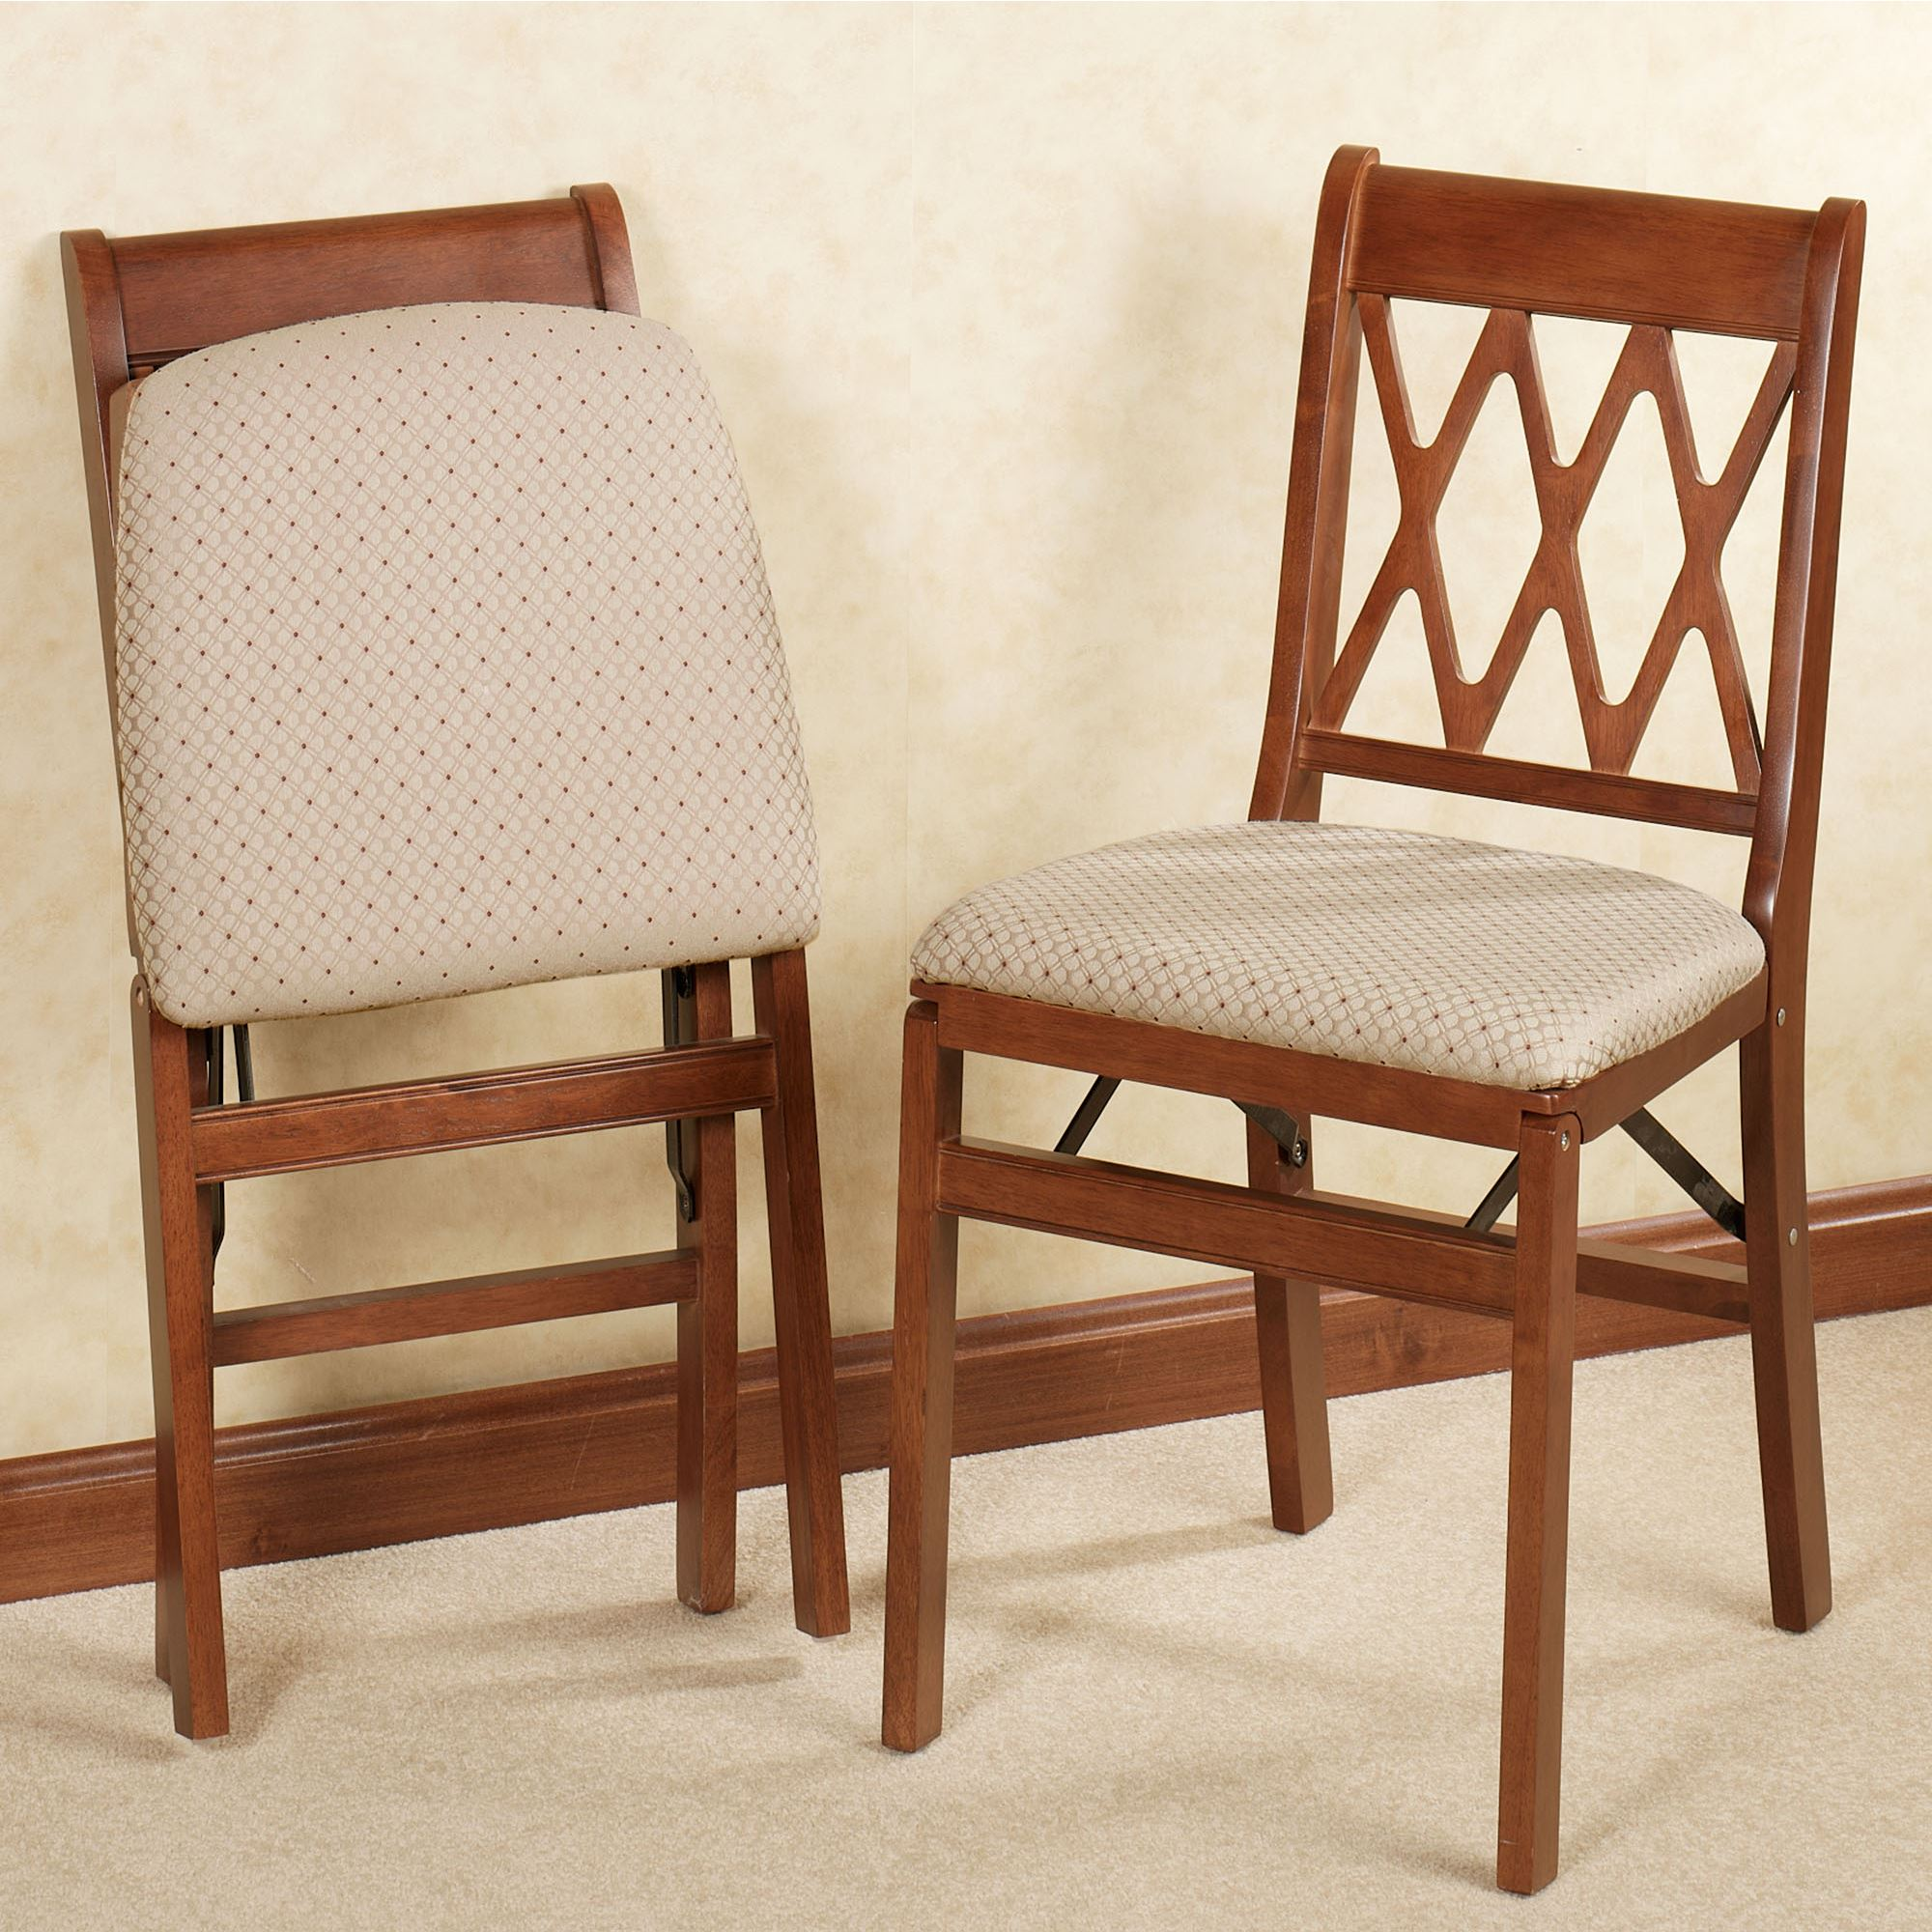 Stakmore Folding Chair Lattice Back Folding Chair Pair